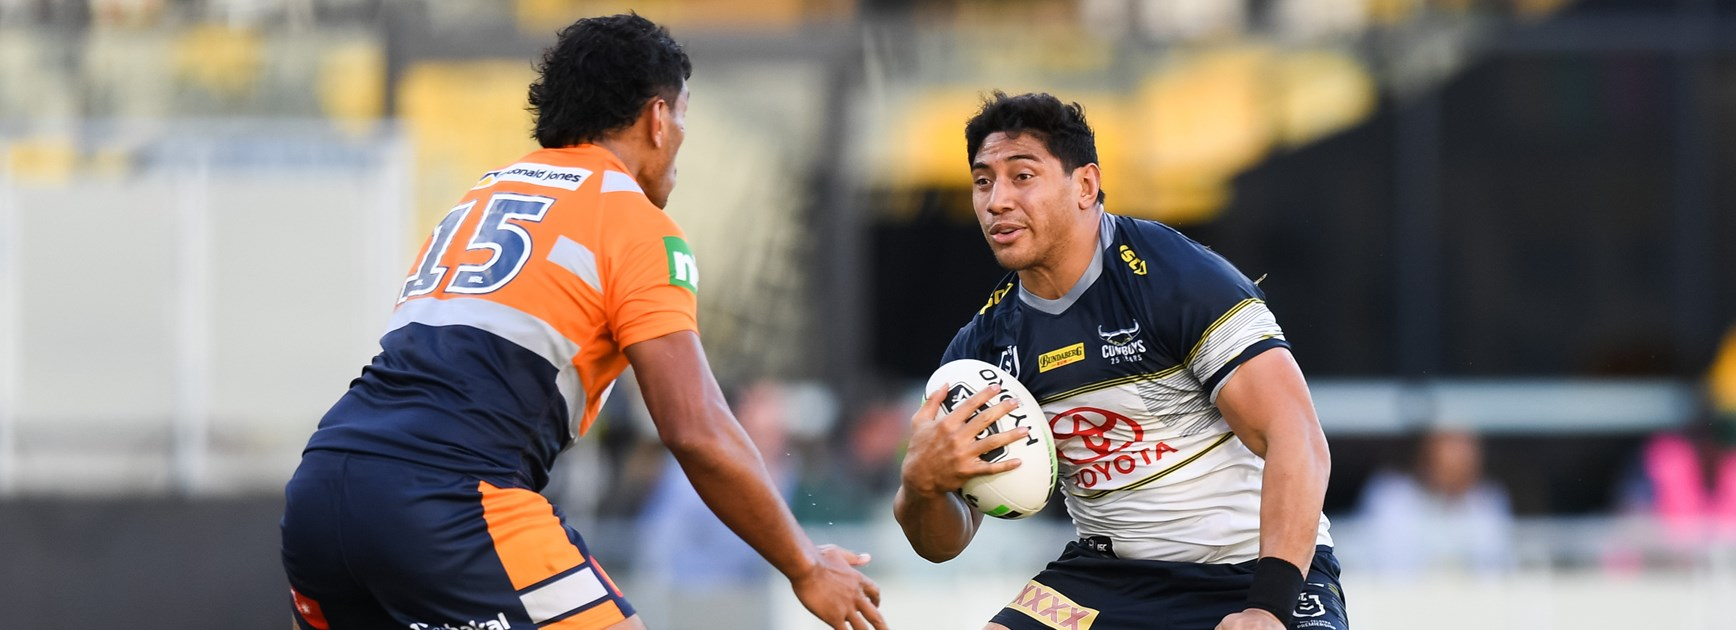 Round 7 snapshot + Dally M votes: Taumalolo on track for second medal